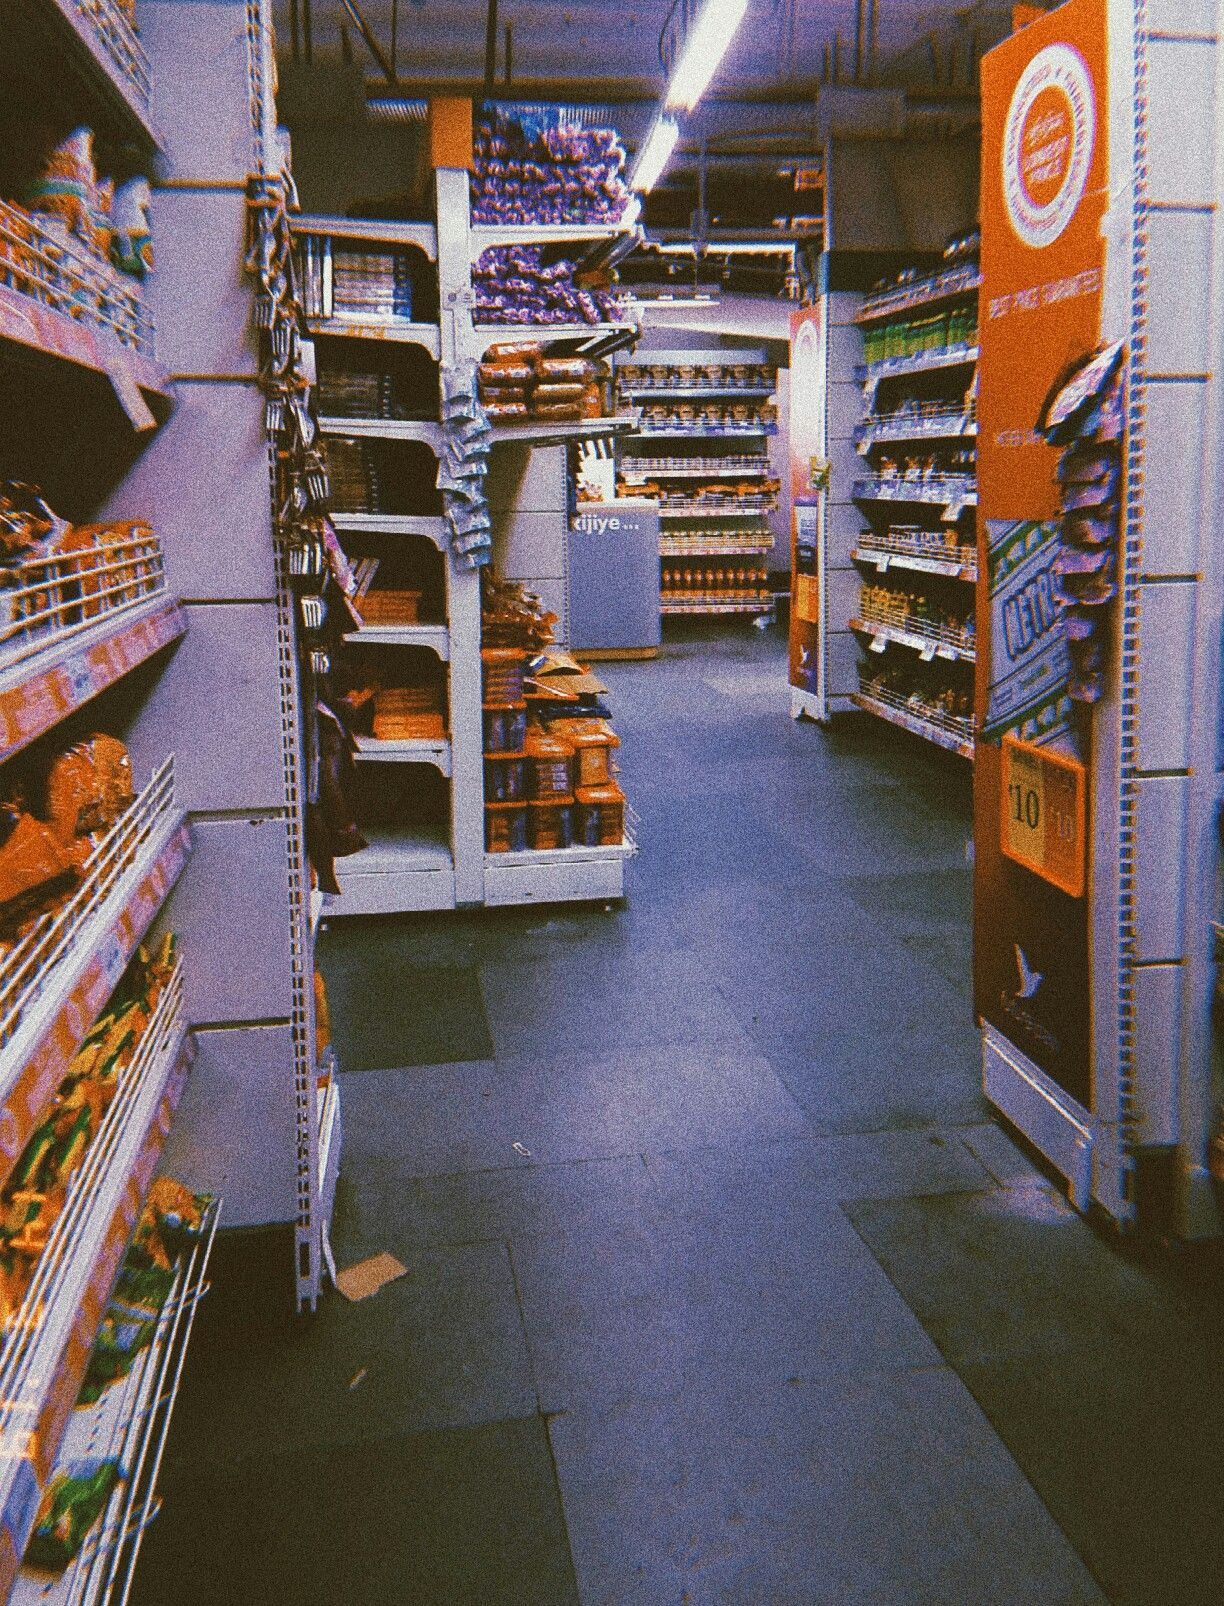 Grocery Store Aesthetics 2 0 Ramen Noodles Grocery Store Aesthetics Vsco Edit Tumblr Chinese Aesthetic Aesthetic Stores Grocery Grocery Store